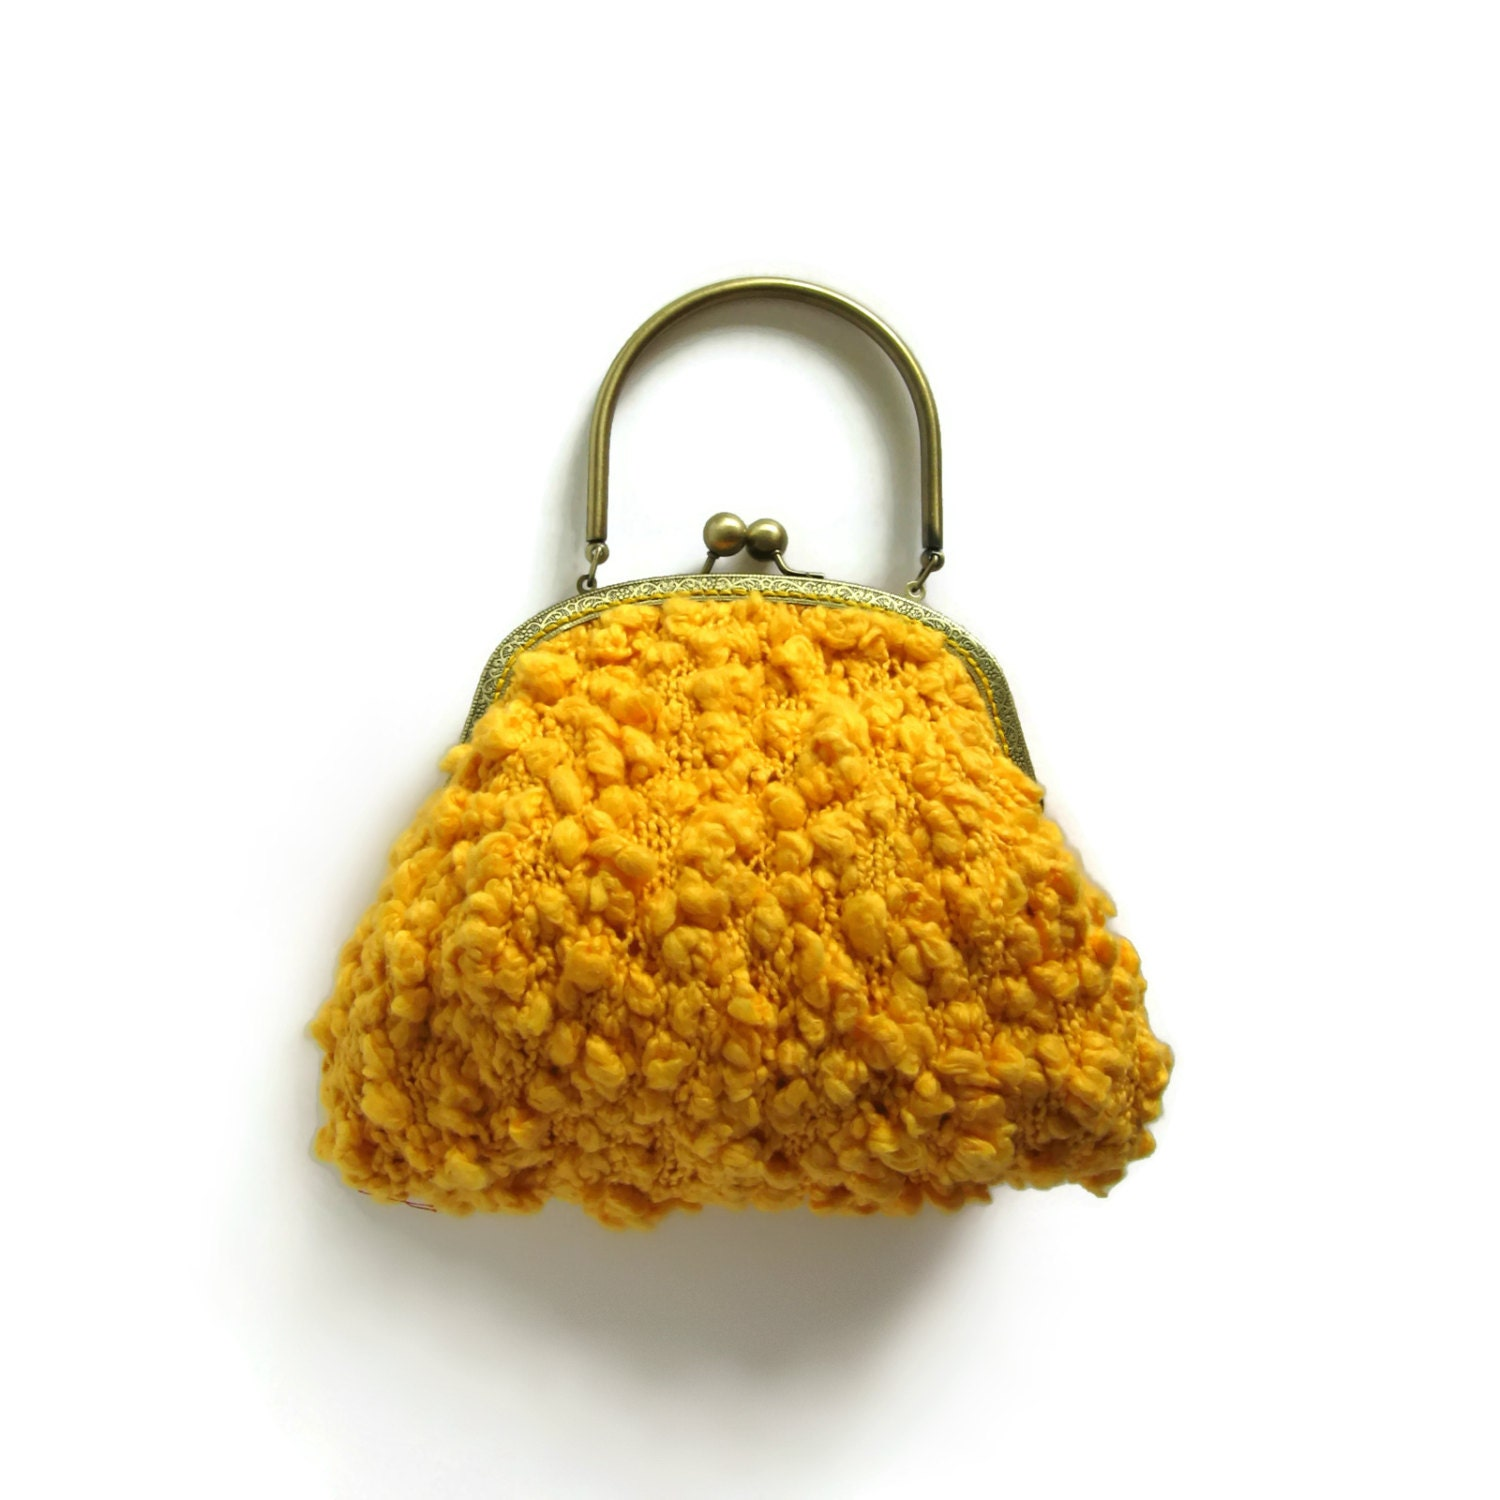 Yellow Bag Purse Knitted in Cotton with Brass Handles - knitBranda